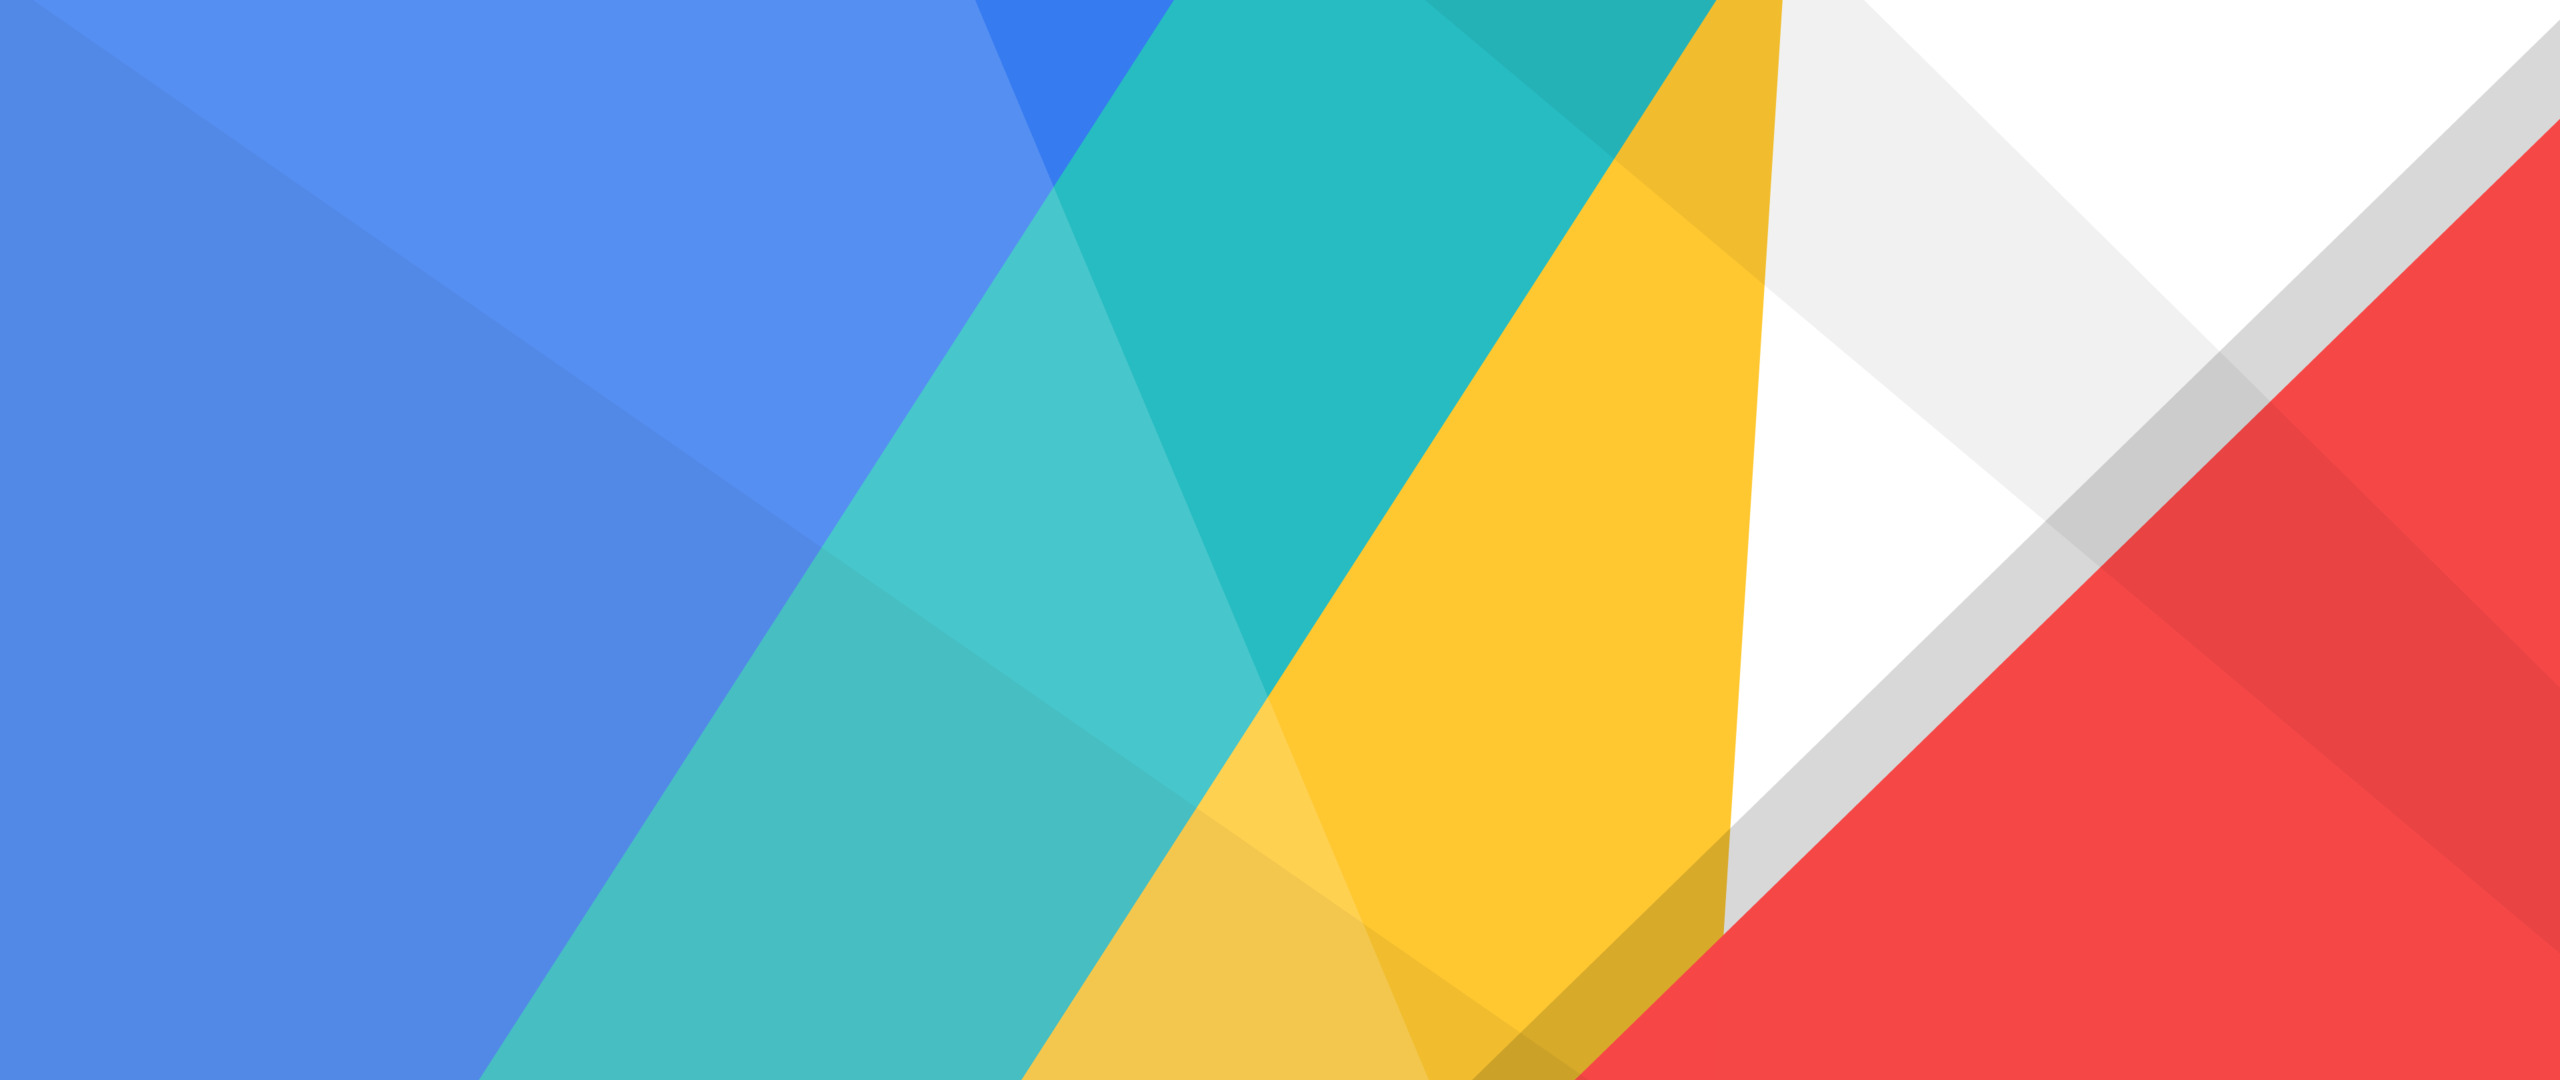 2560x1080 Material Design 4k 2560x1080 Resolution HD 4k